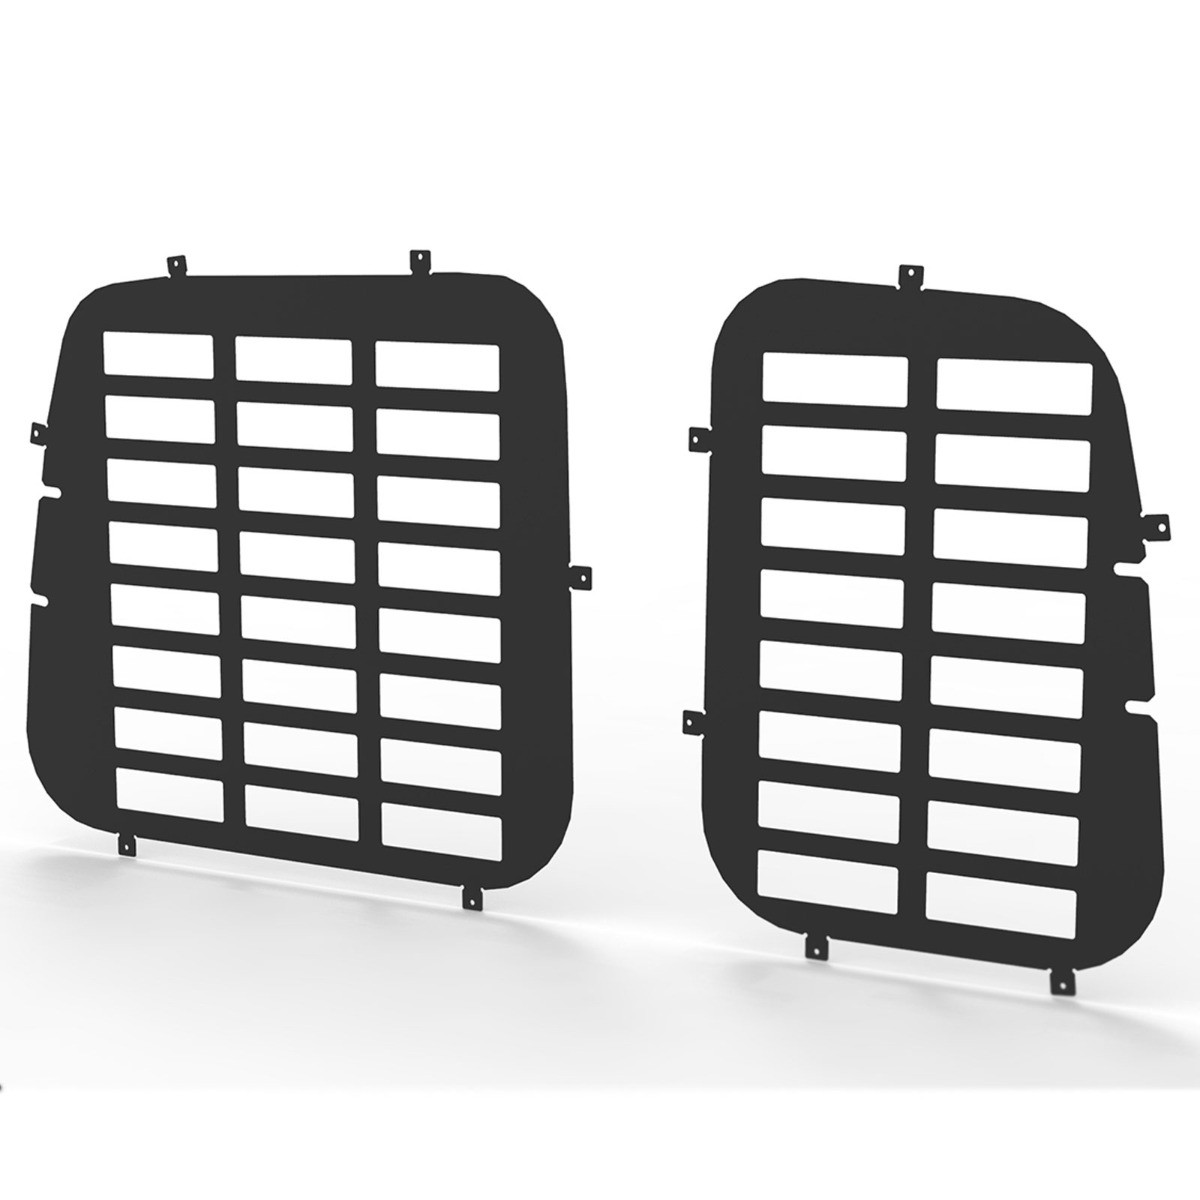 VW Caddy and Maxi 2004-2015 Rear Door Window Guard Grille in Black-Tailgate